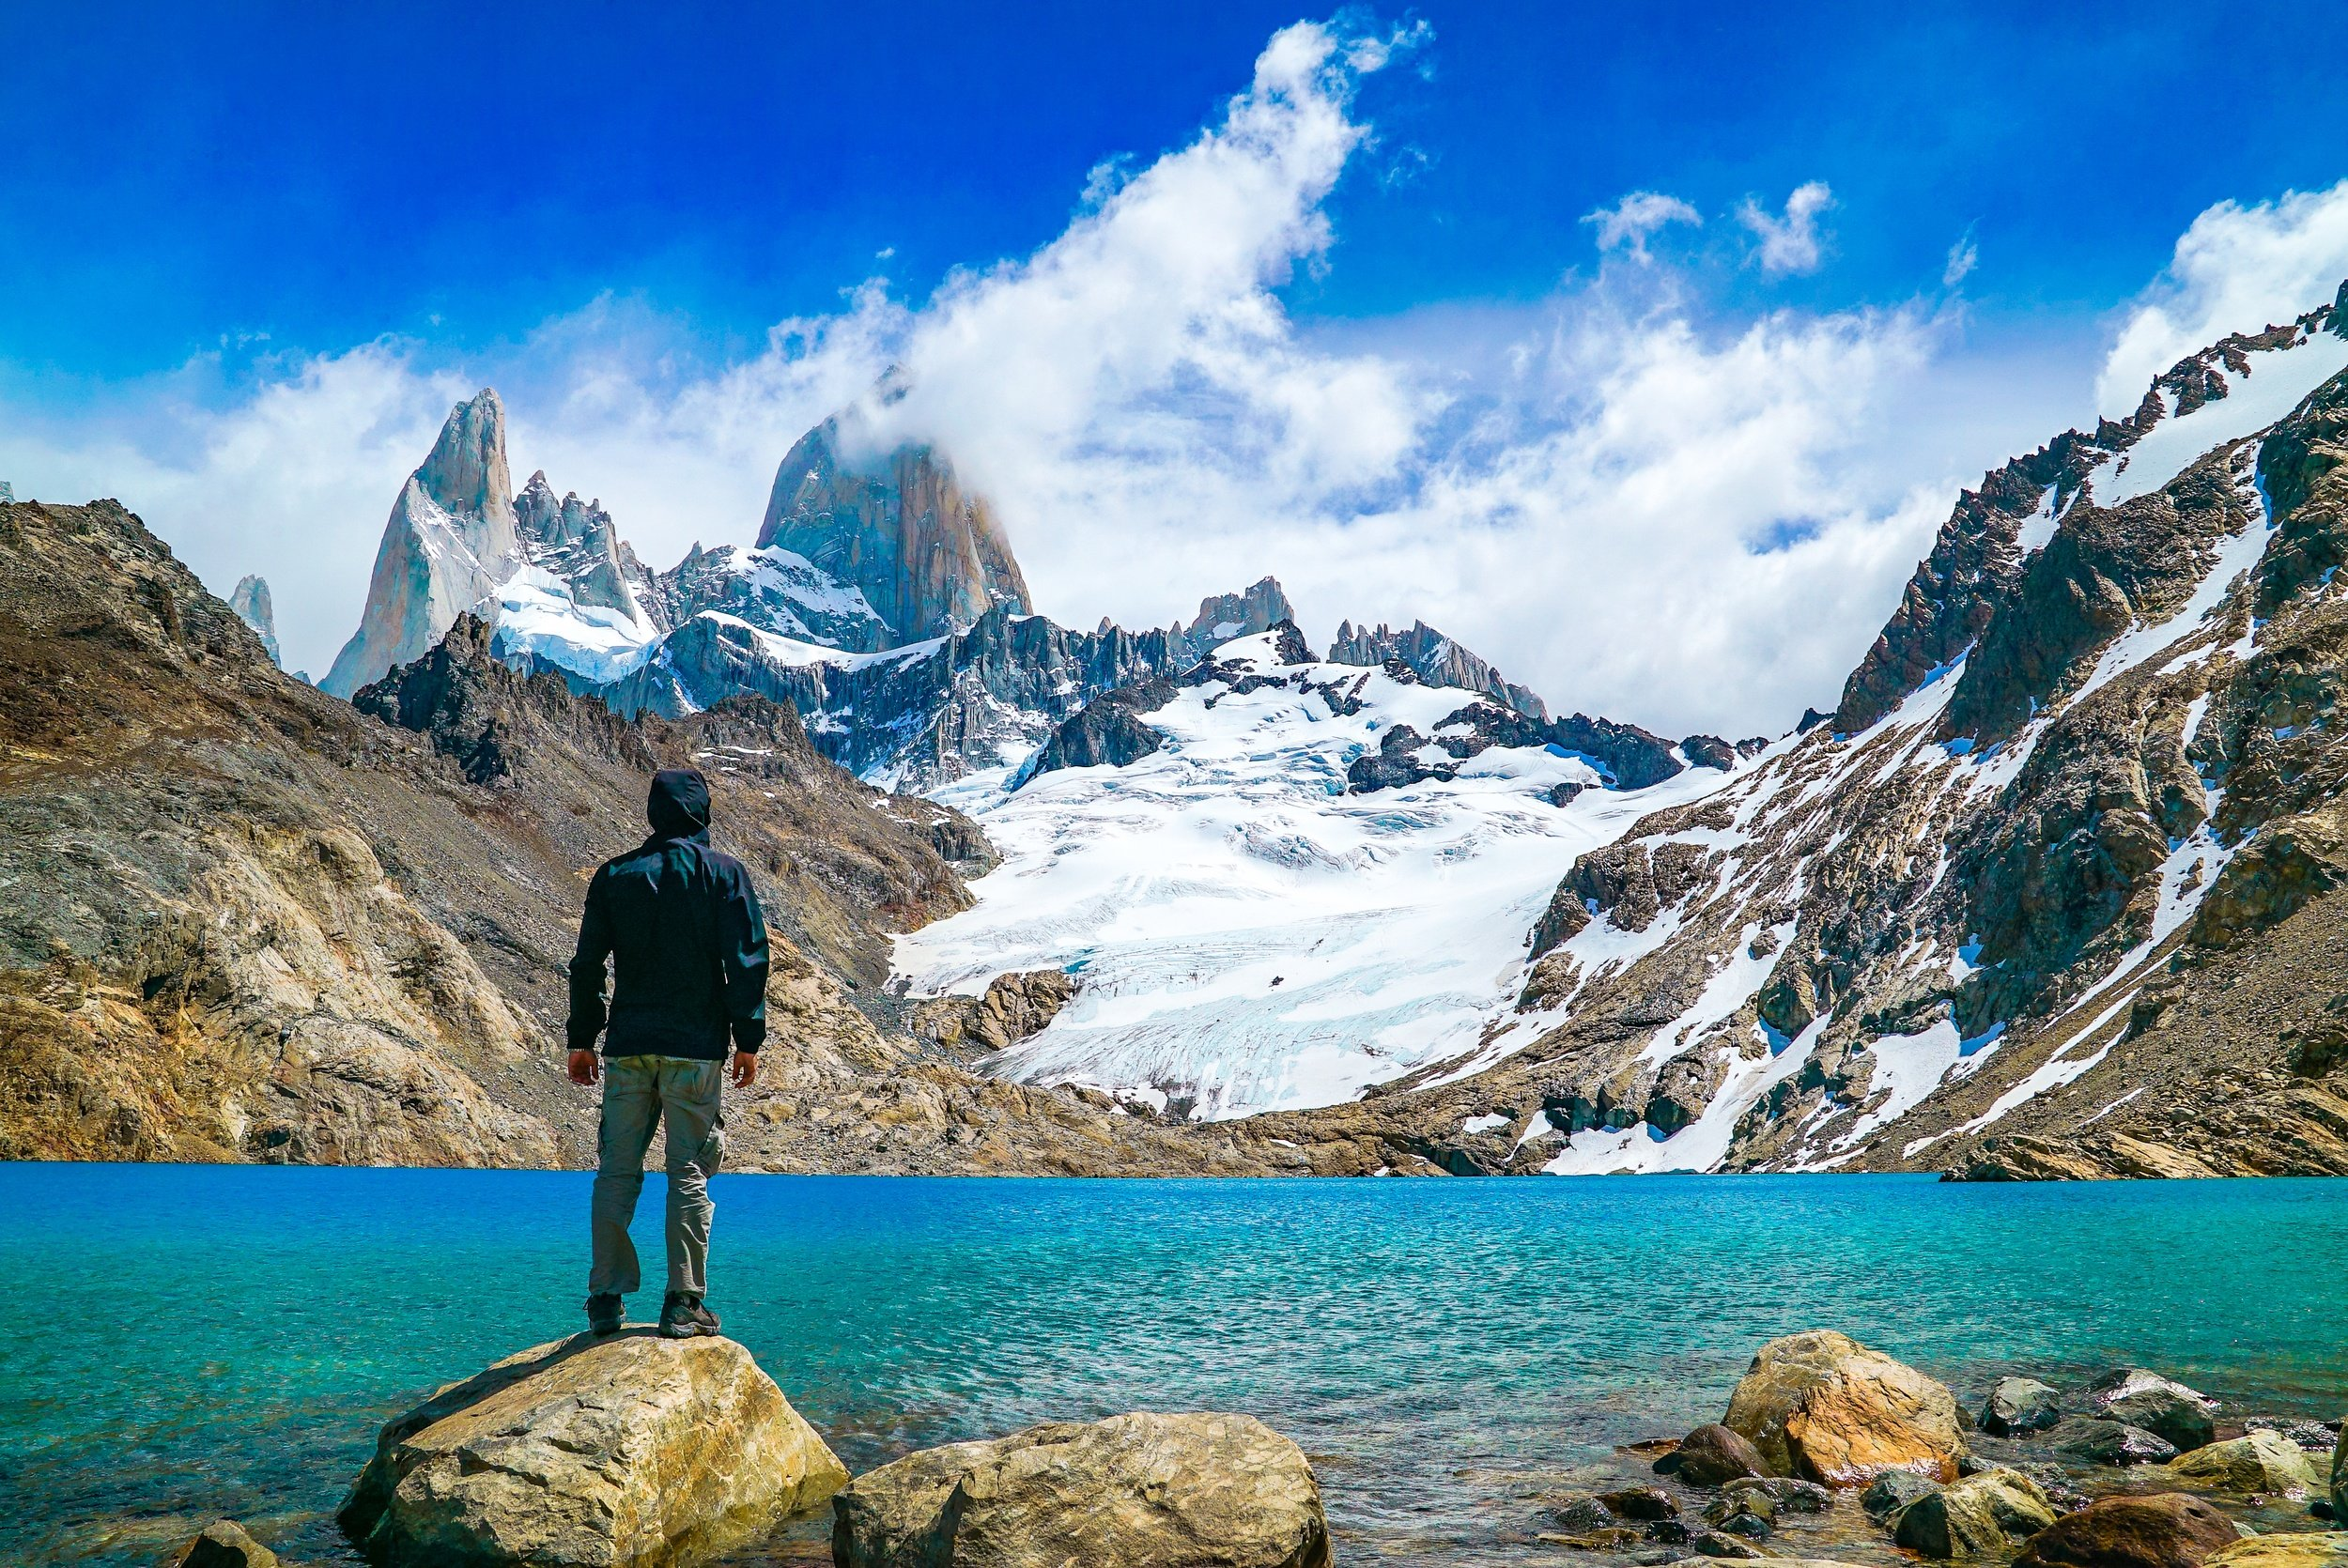 Is Chile safe to travel alone